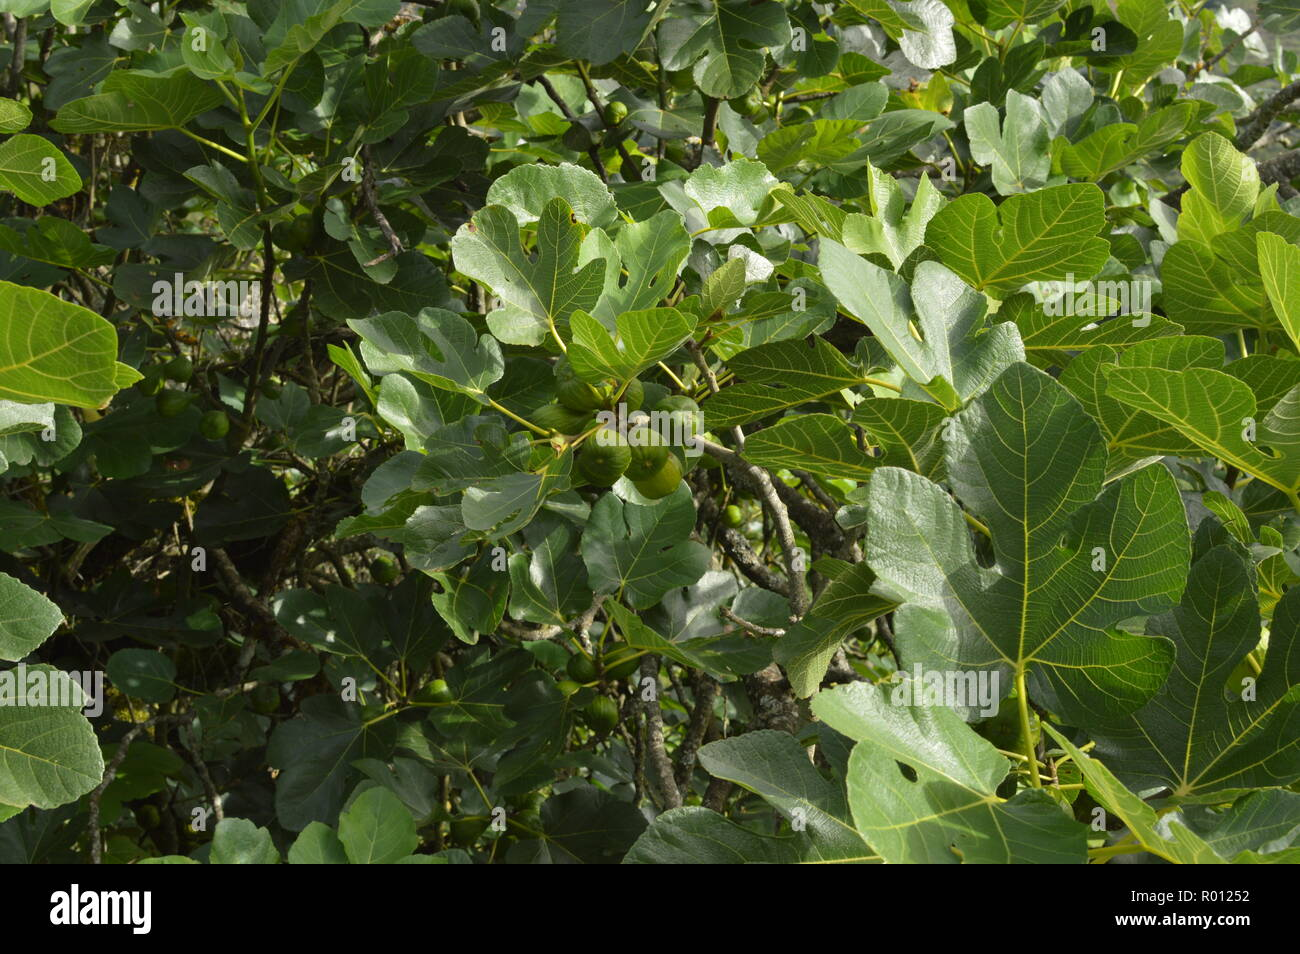 Branches Of A Fig Tree On Top Of Lugo Mountain In Galicia. Nature, Animals, Landscapes, Travel. August 2, 2018. Rebedul, Lugo, Galicia, Spain. - Stock Image